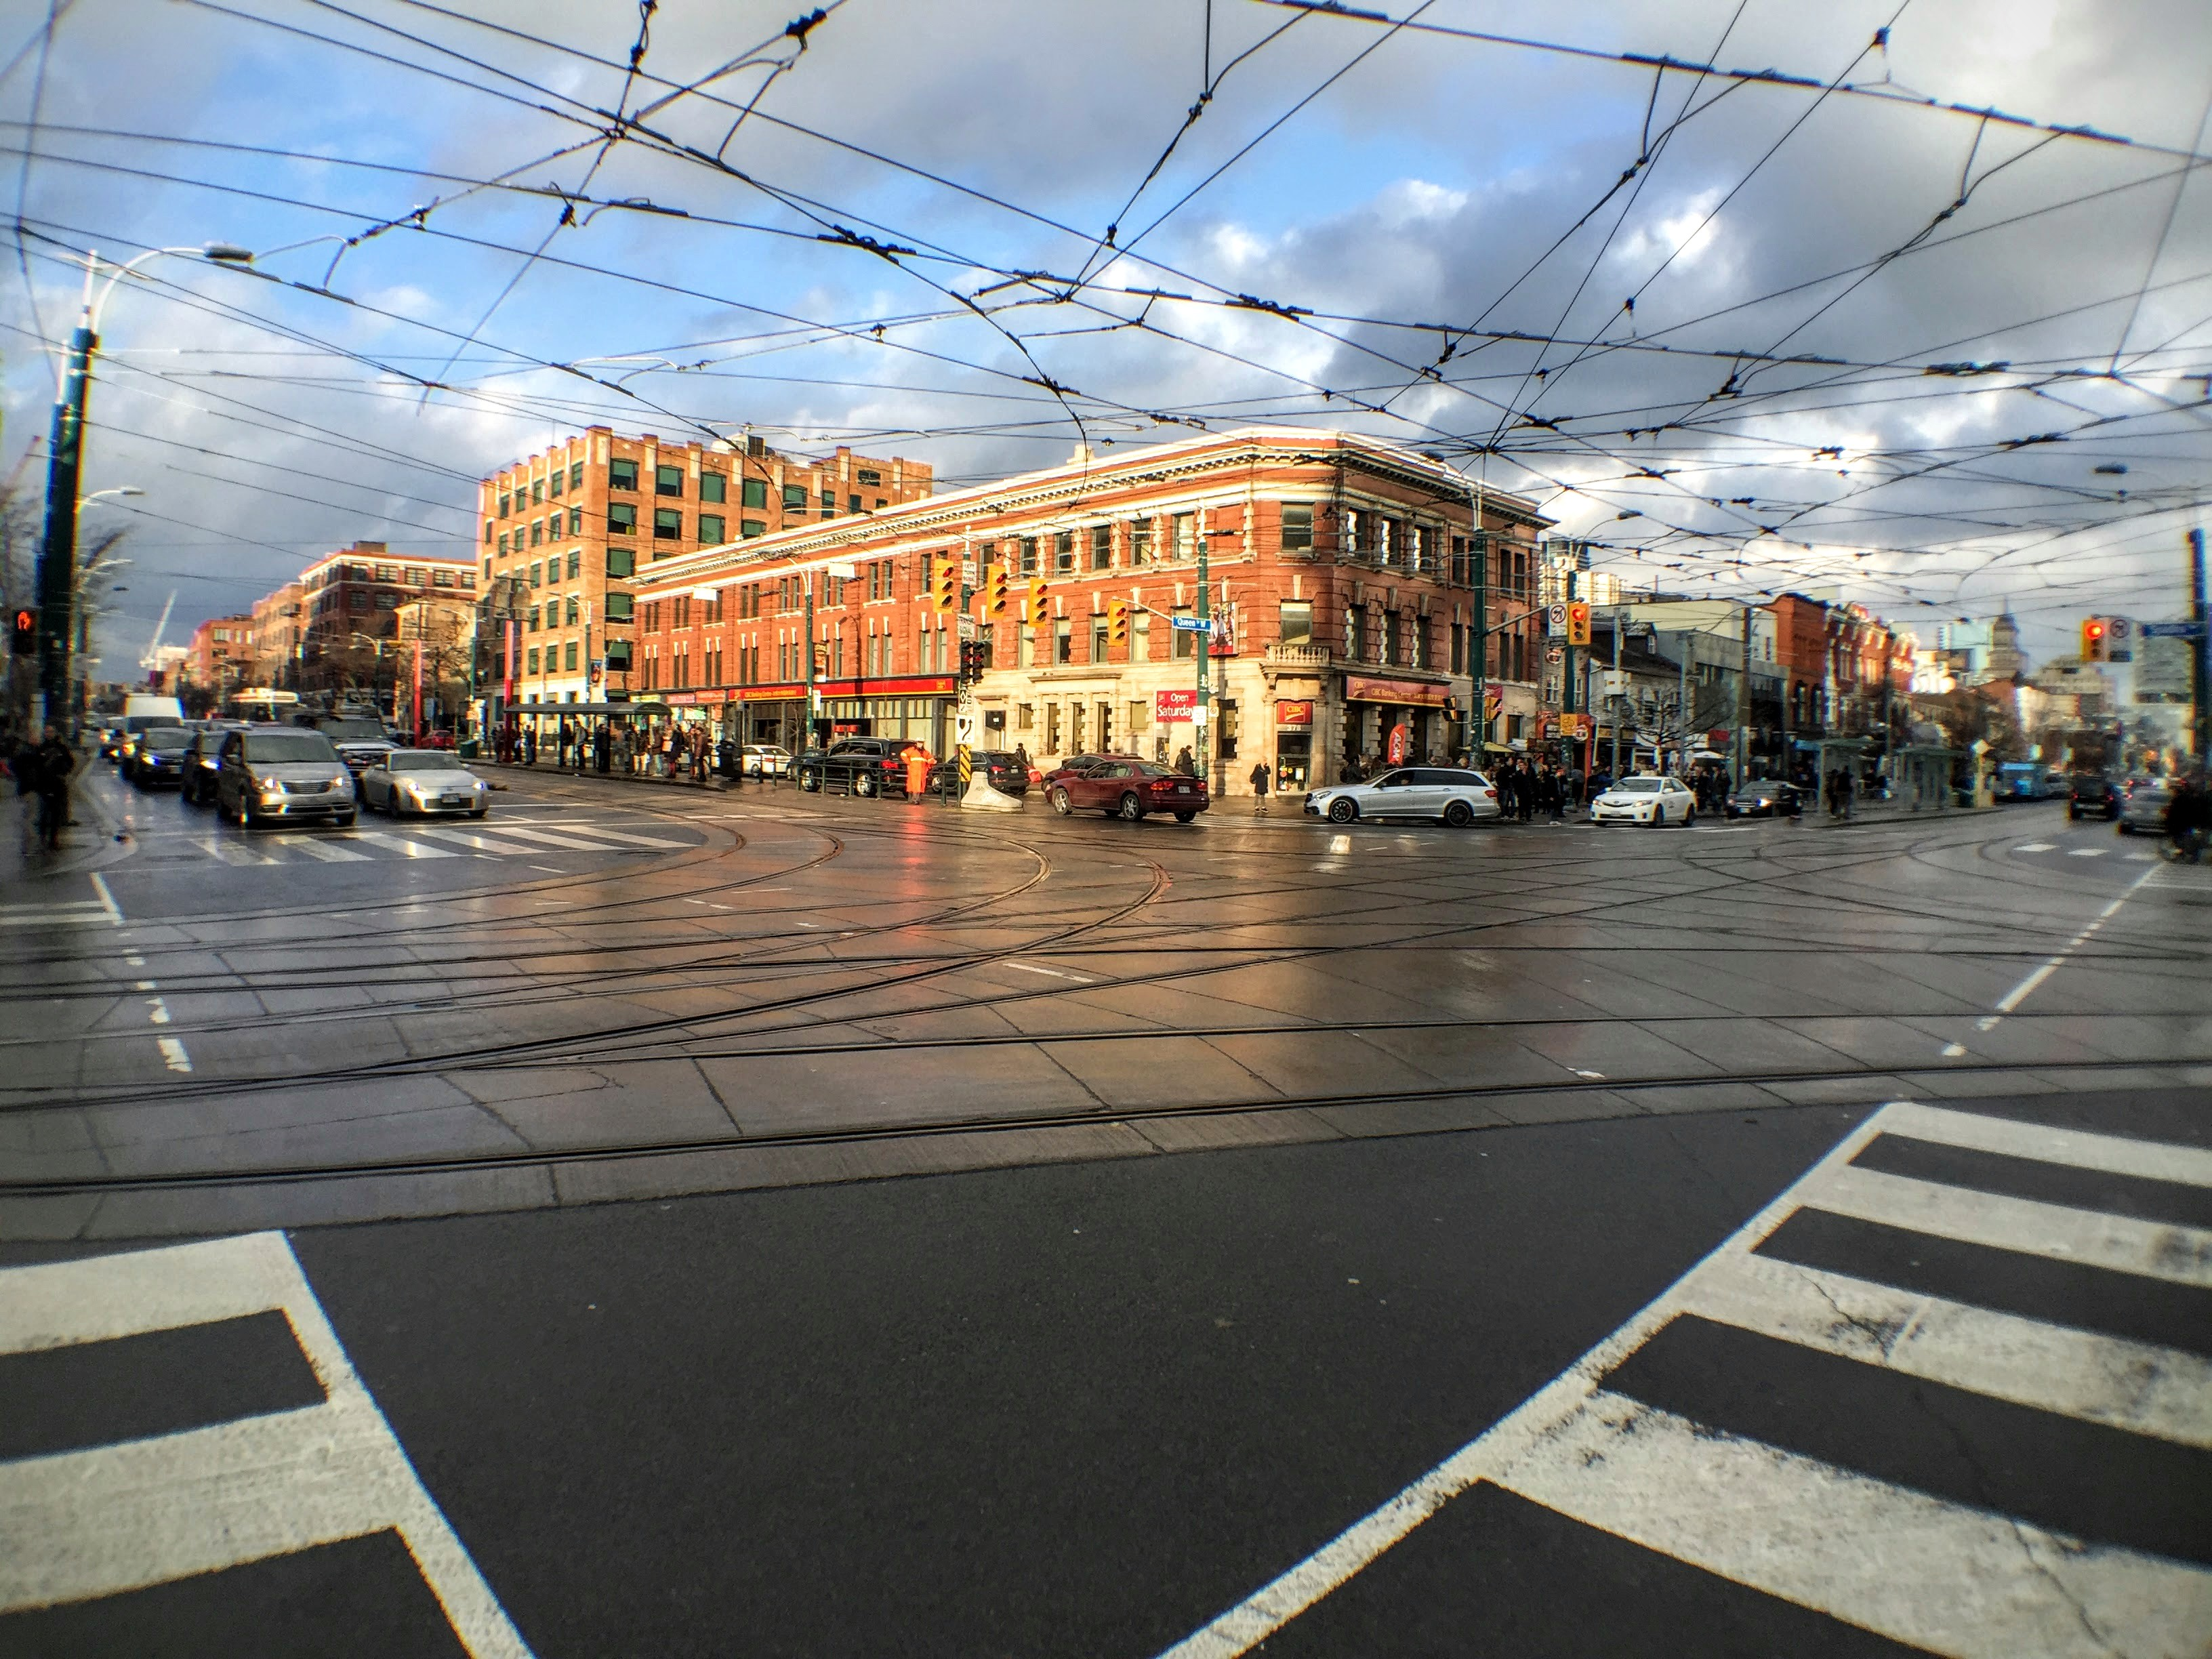 Toronto's Spadina and Queen intersection seen through the Olloclip's wide-angle lens.